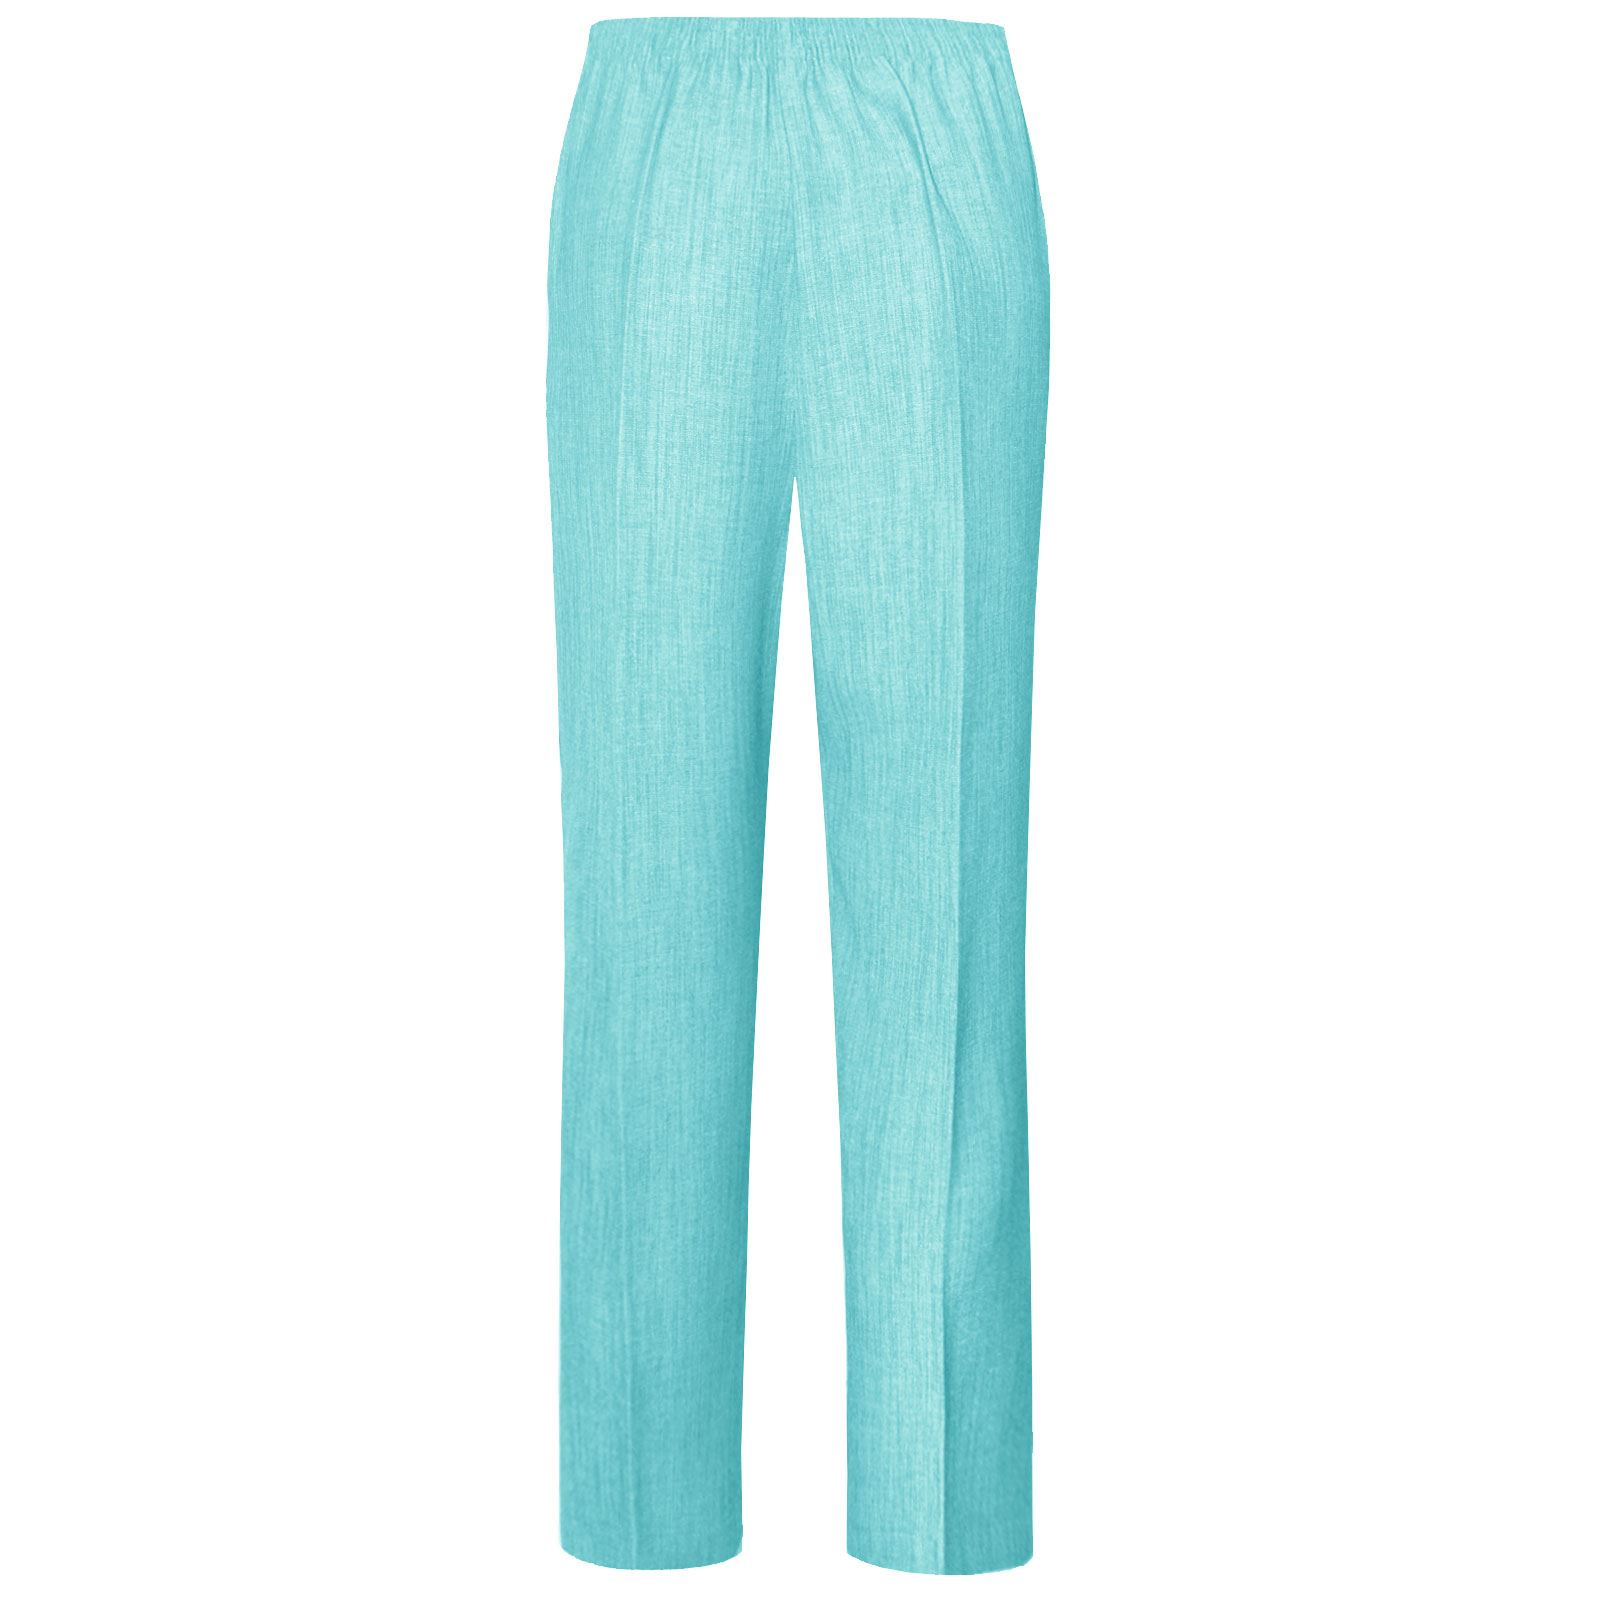 Lastest Short Waisted Women Have High Waists  Highlighting Your Lower Half Instead 3 Banish HighWaisted Pants From Your Life If You Have A High Waist And Wear High Waisted Pants You Are Going To Look Like You Are All Pants There Will Be Too